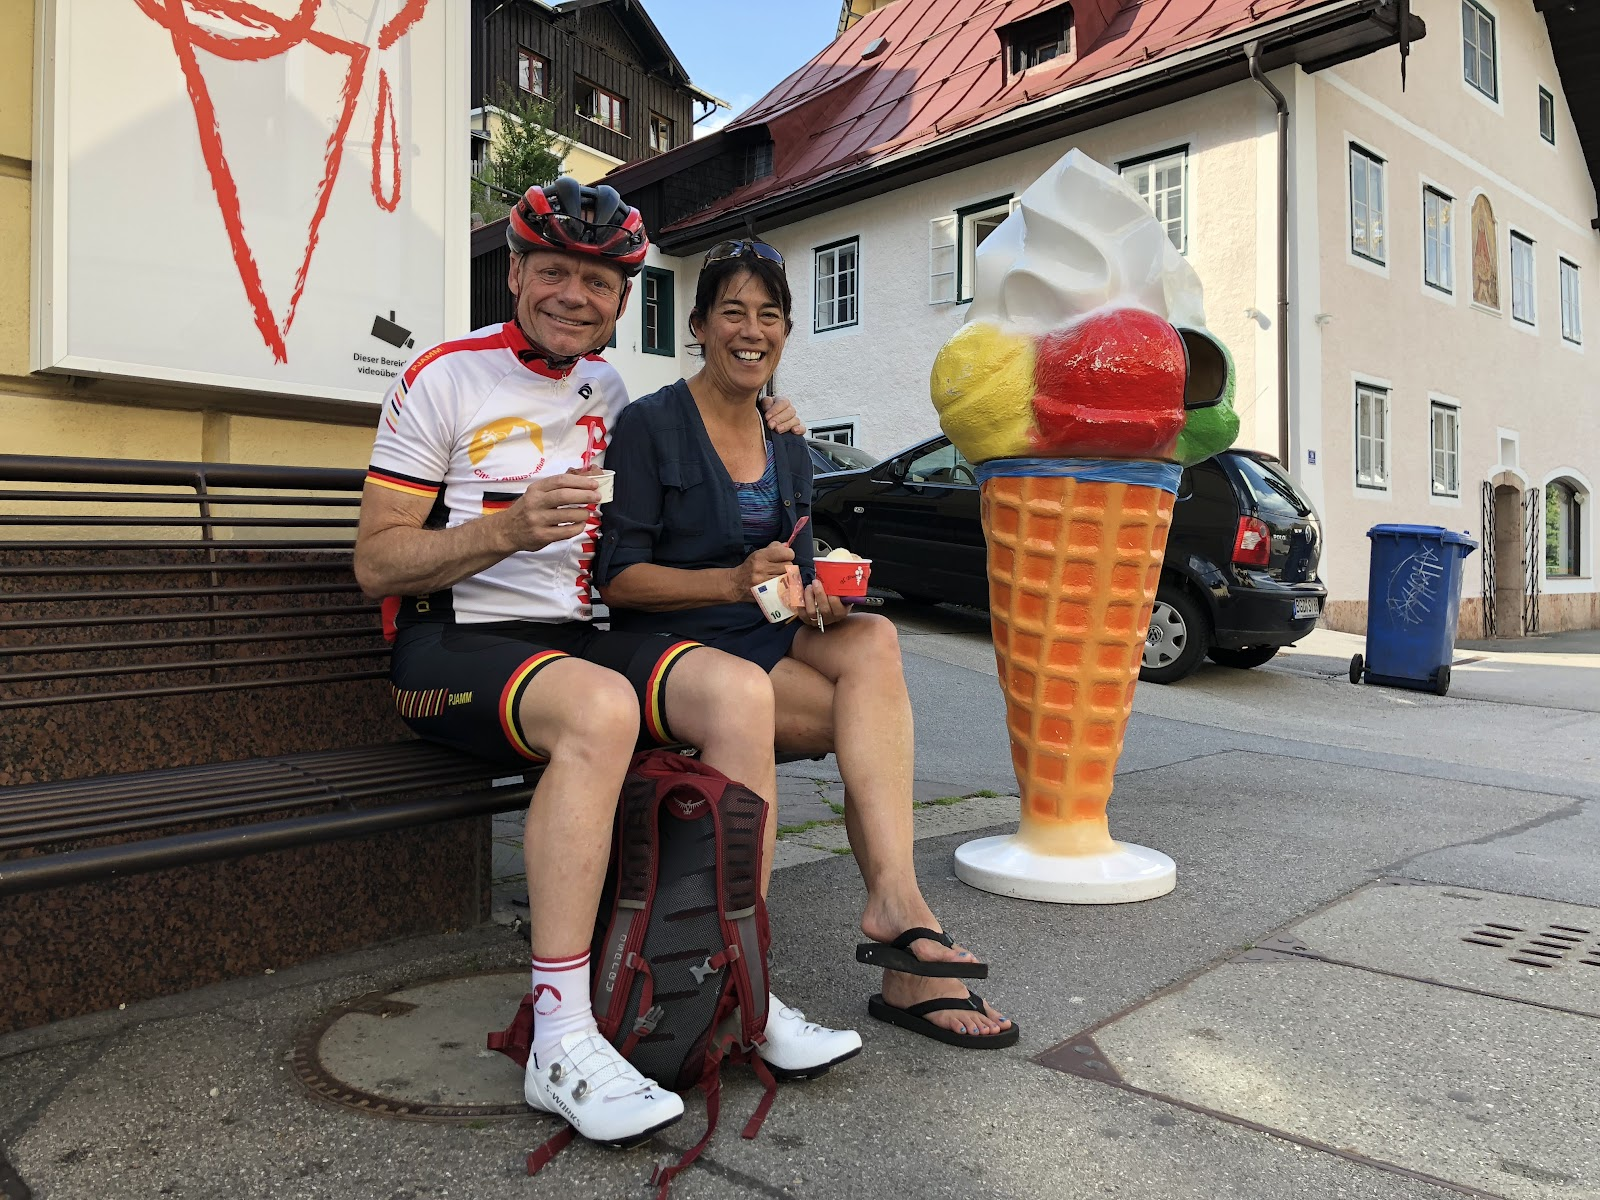 Berchtesgaden - cycling Eagles Nest - PJAMM cycling, ice cream